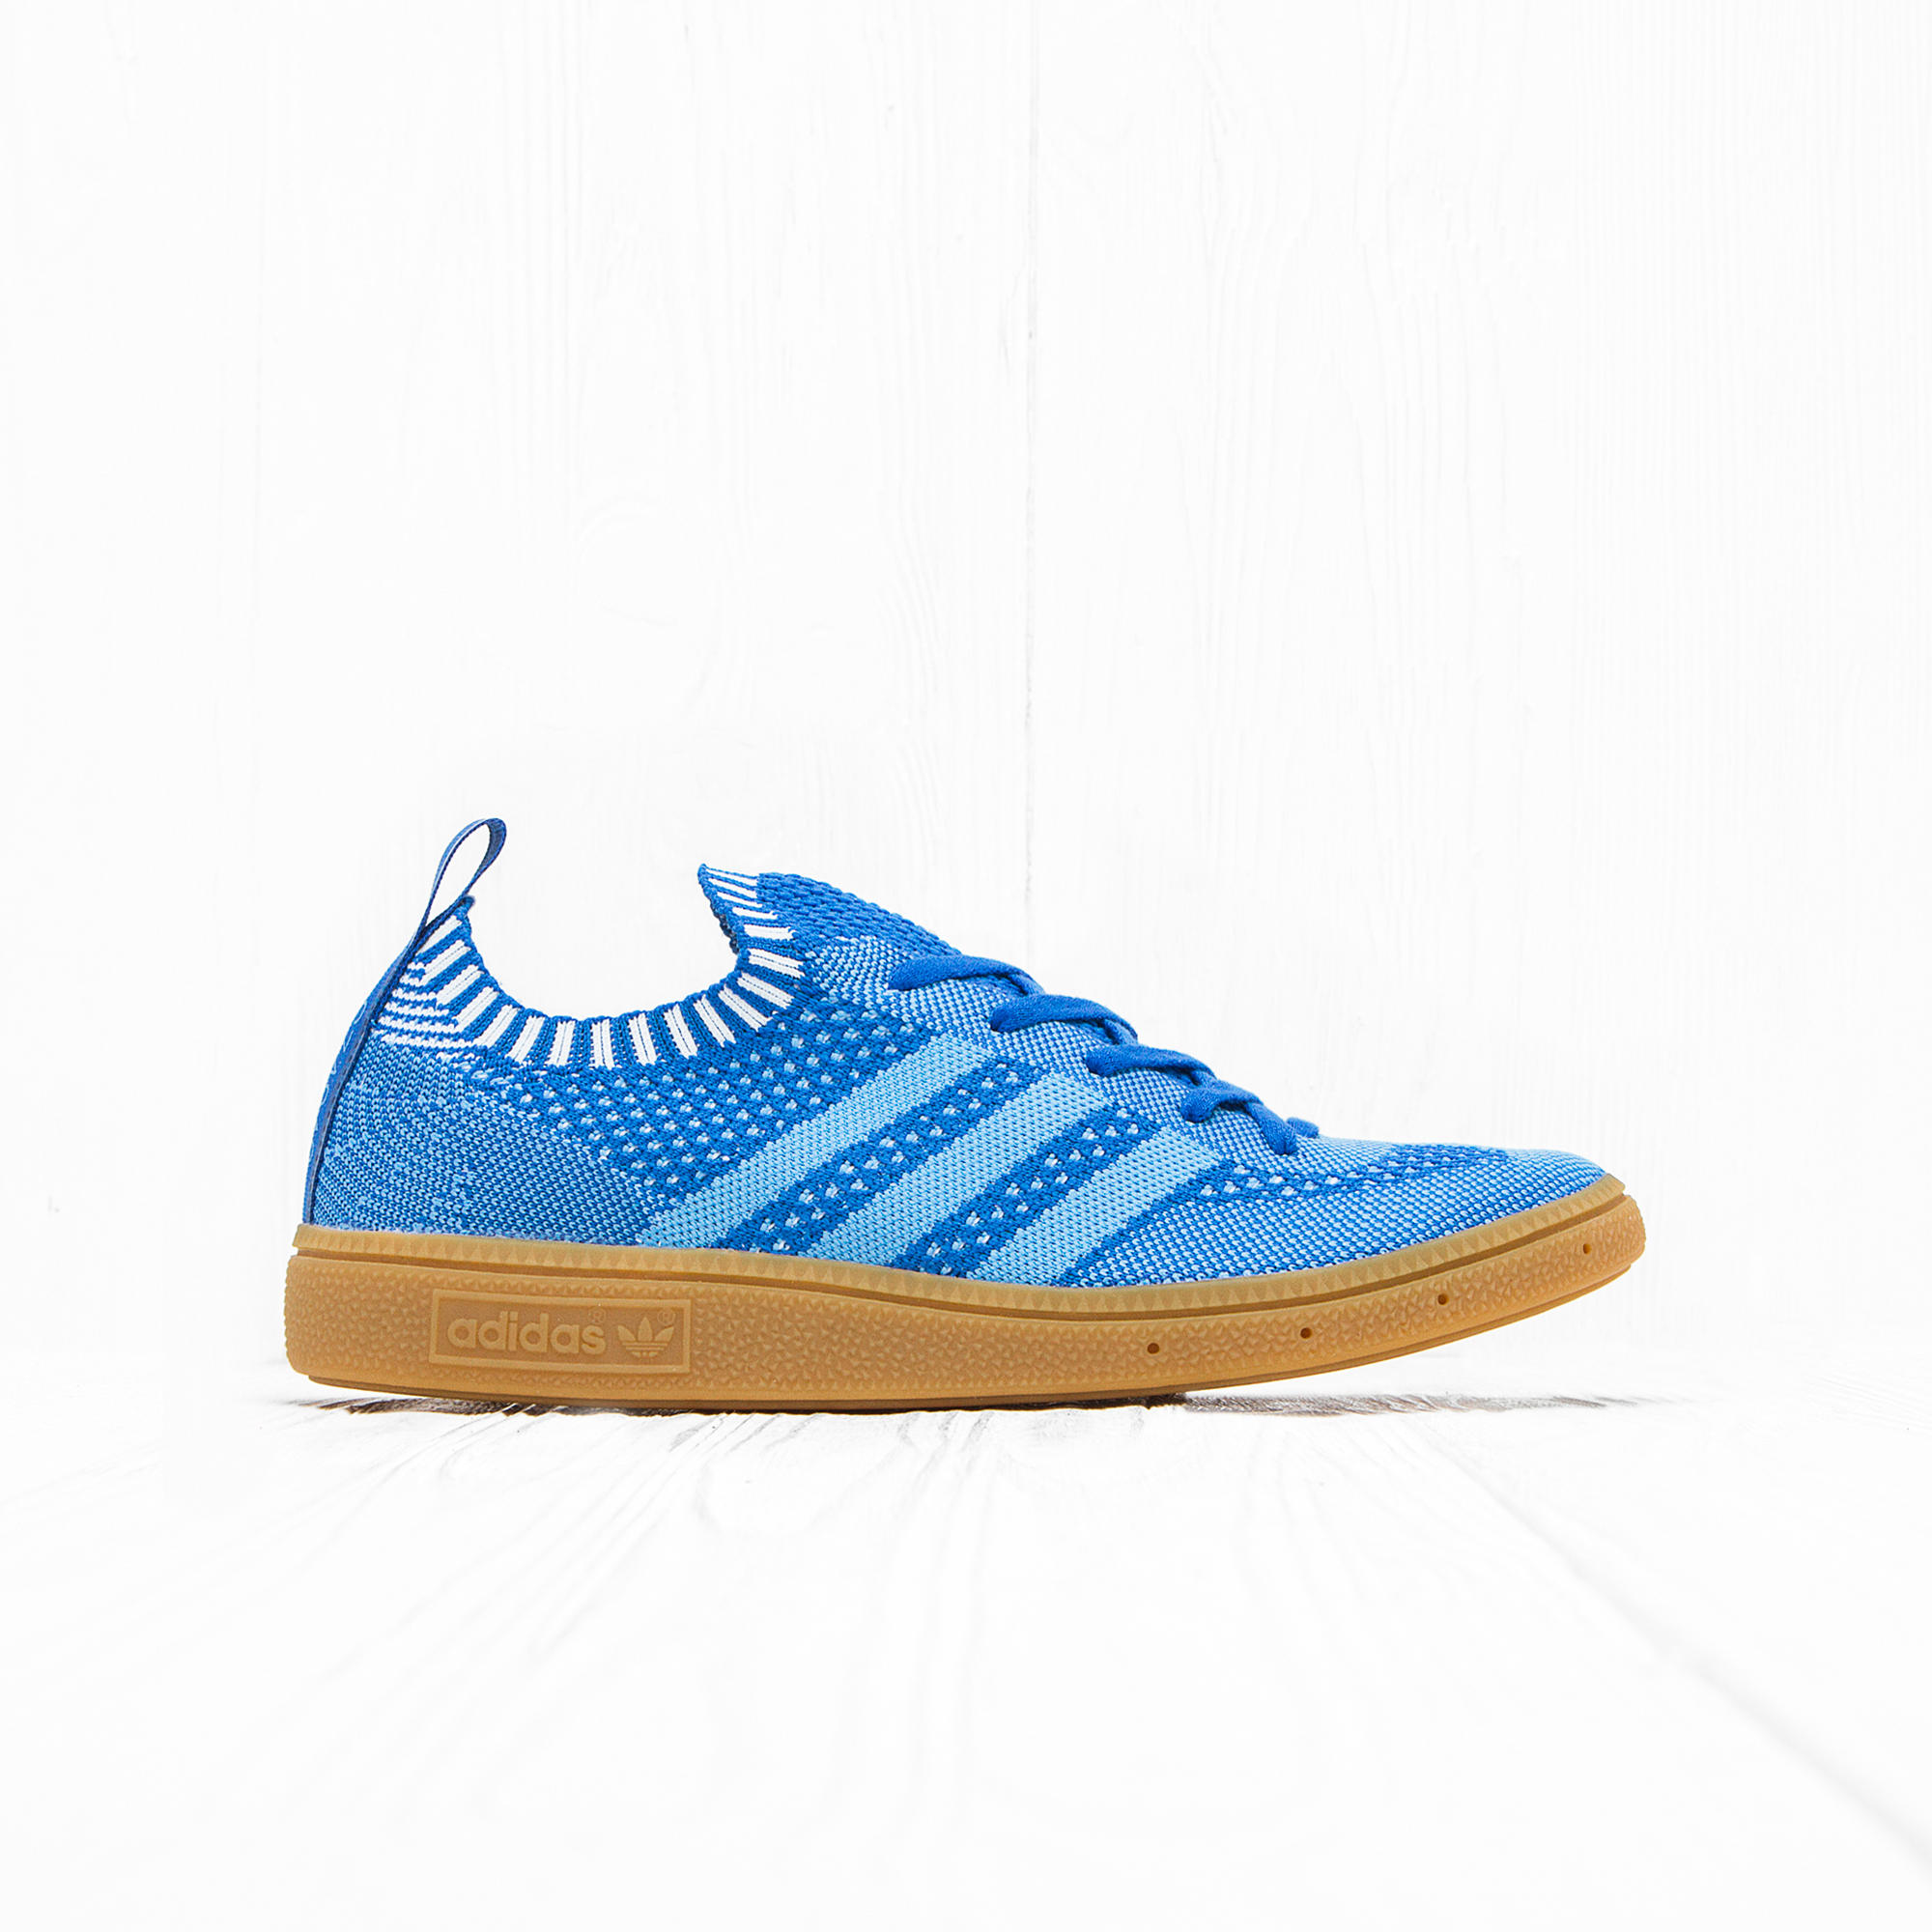 Кроссовки Adidas VERY SPEZIAL PRIMEKNIT Blue/Light Blue/Running White